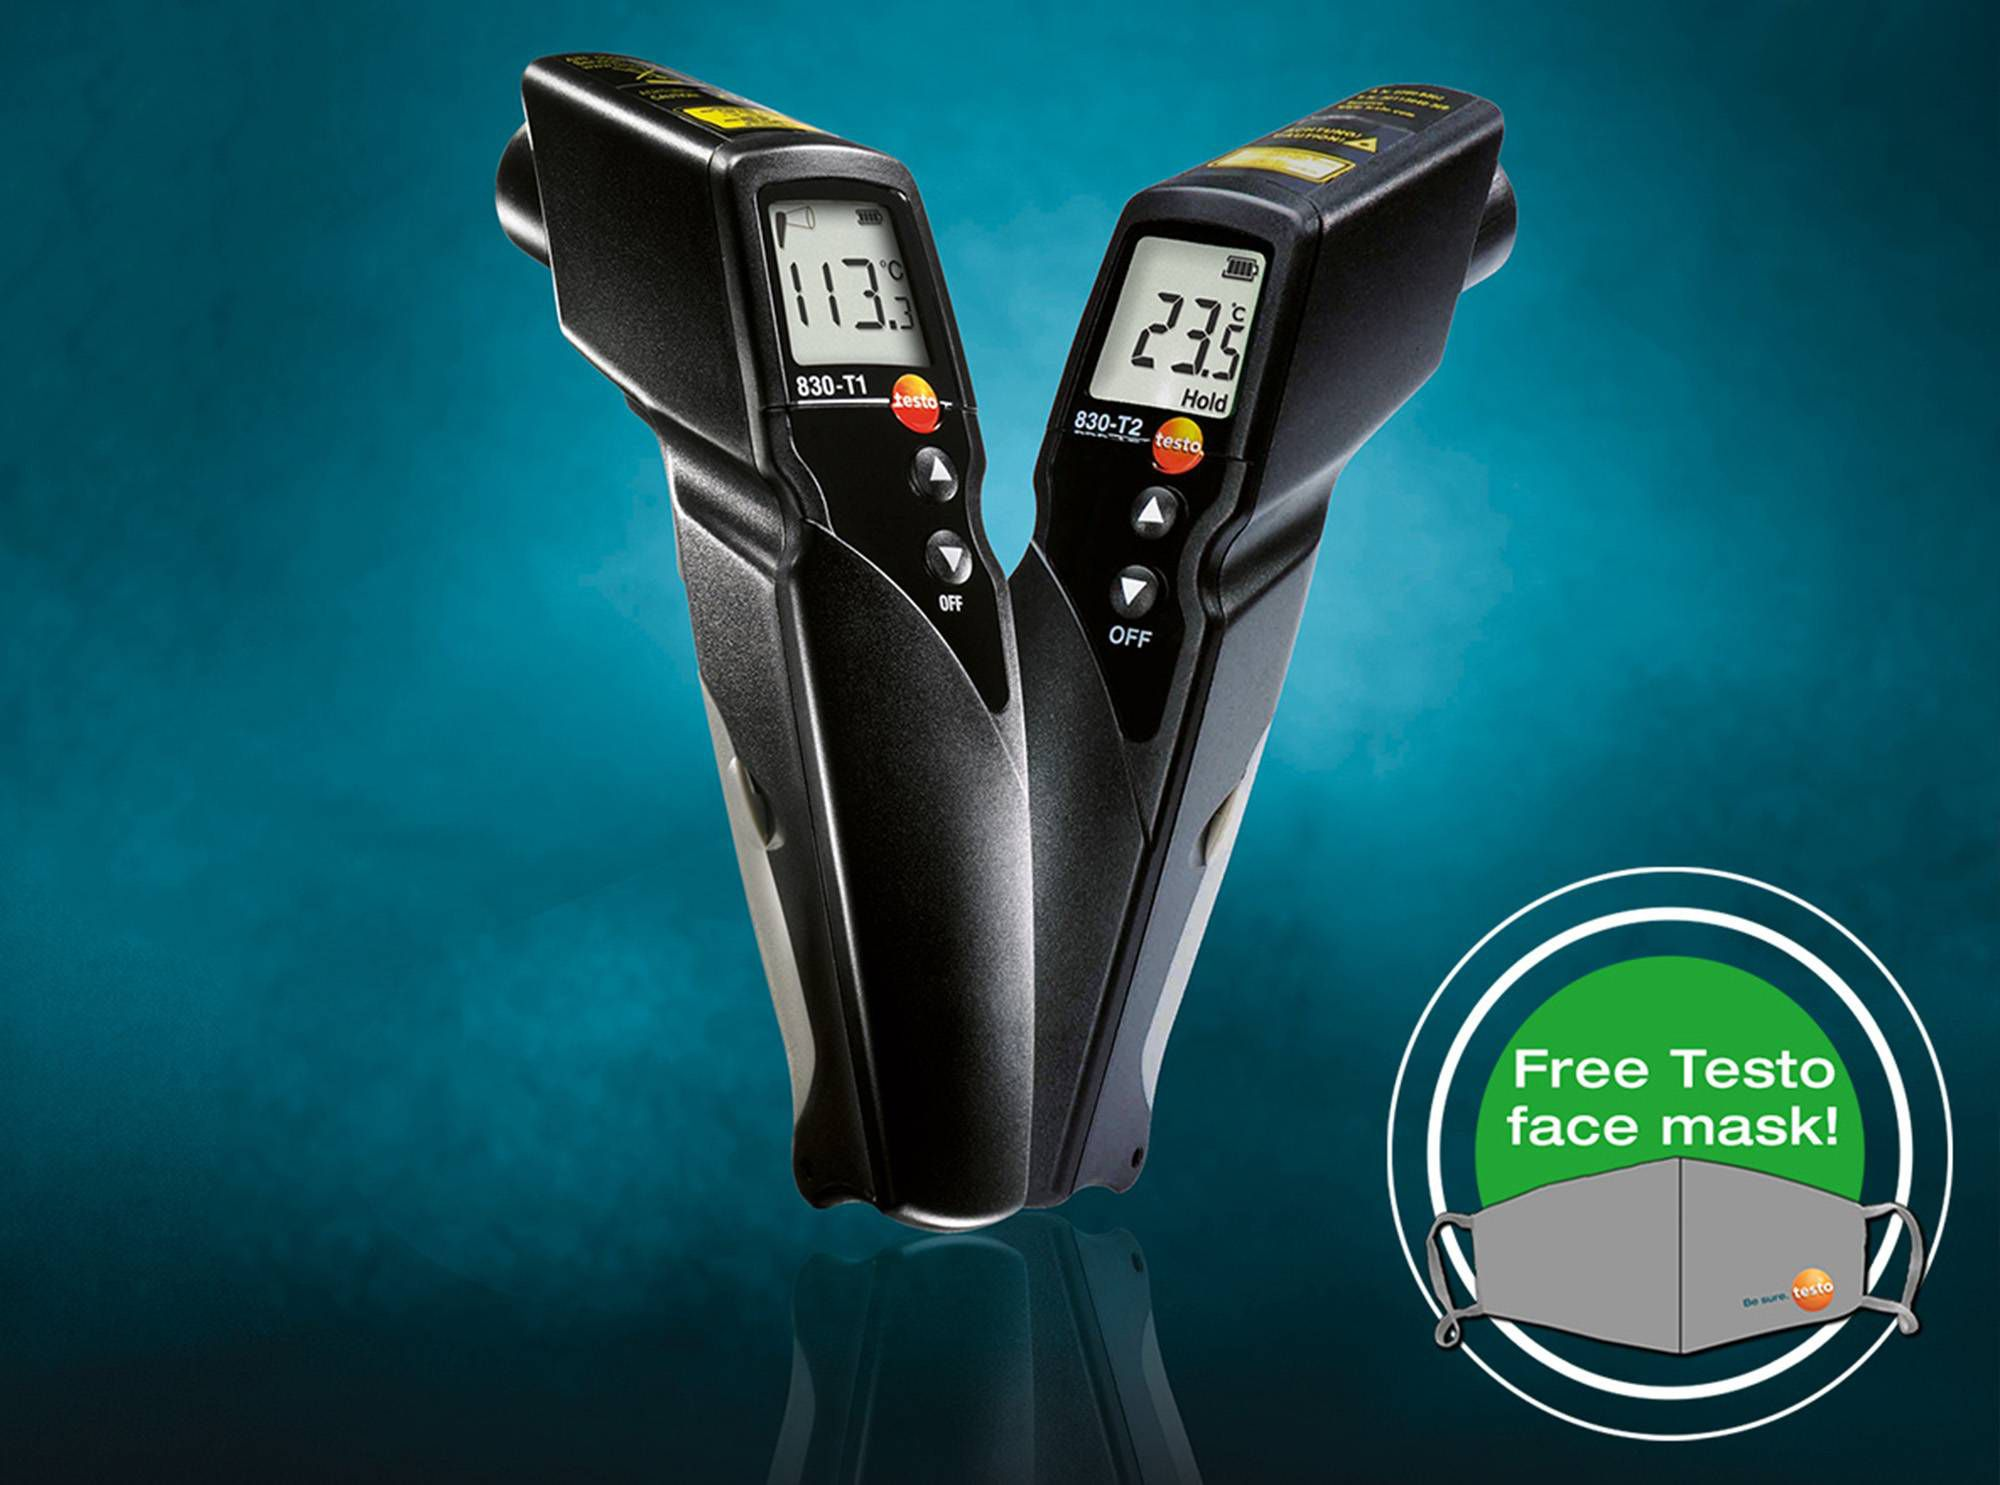 testo-830 special offers page.jpg